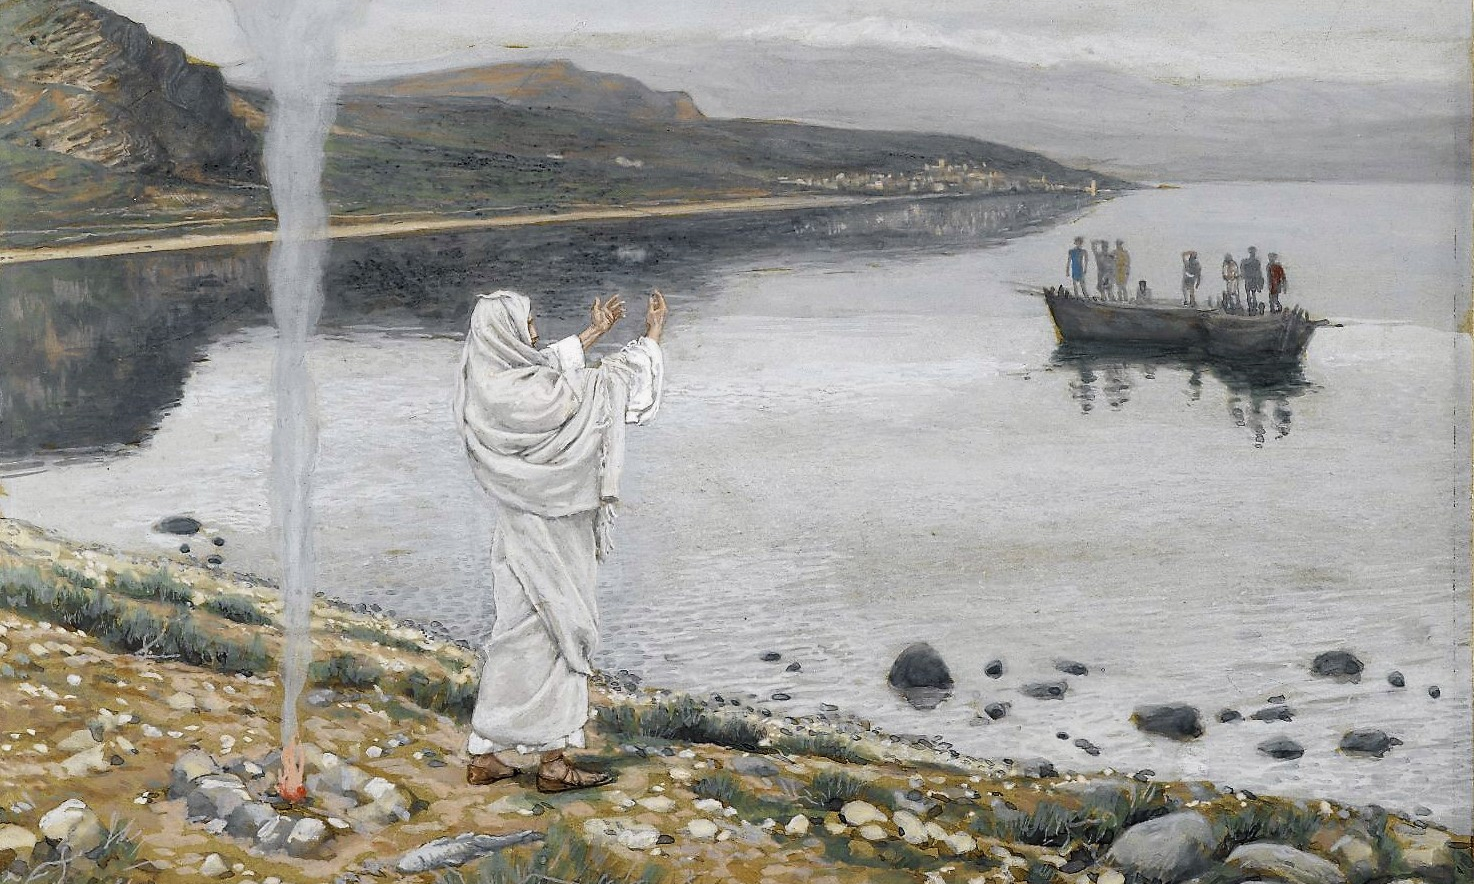 James Tissot, Christ Appears on the Shore of Lake Tiberias